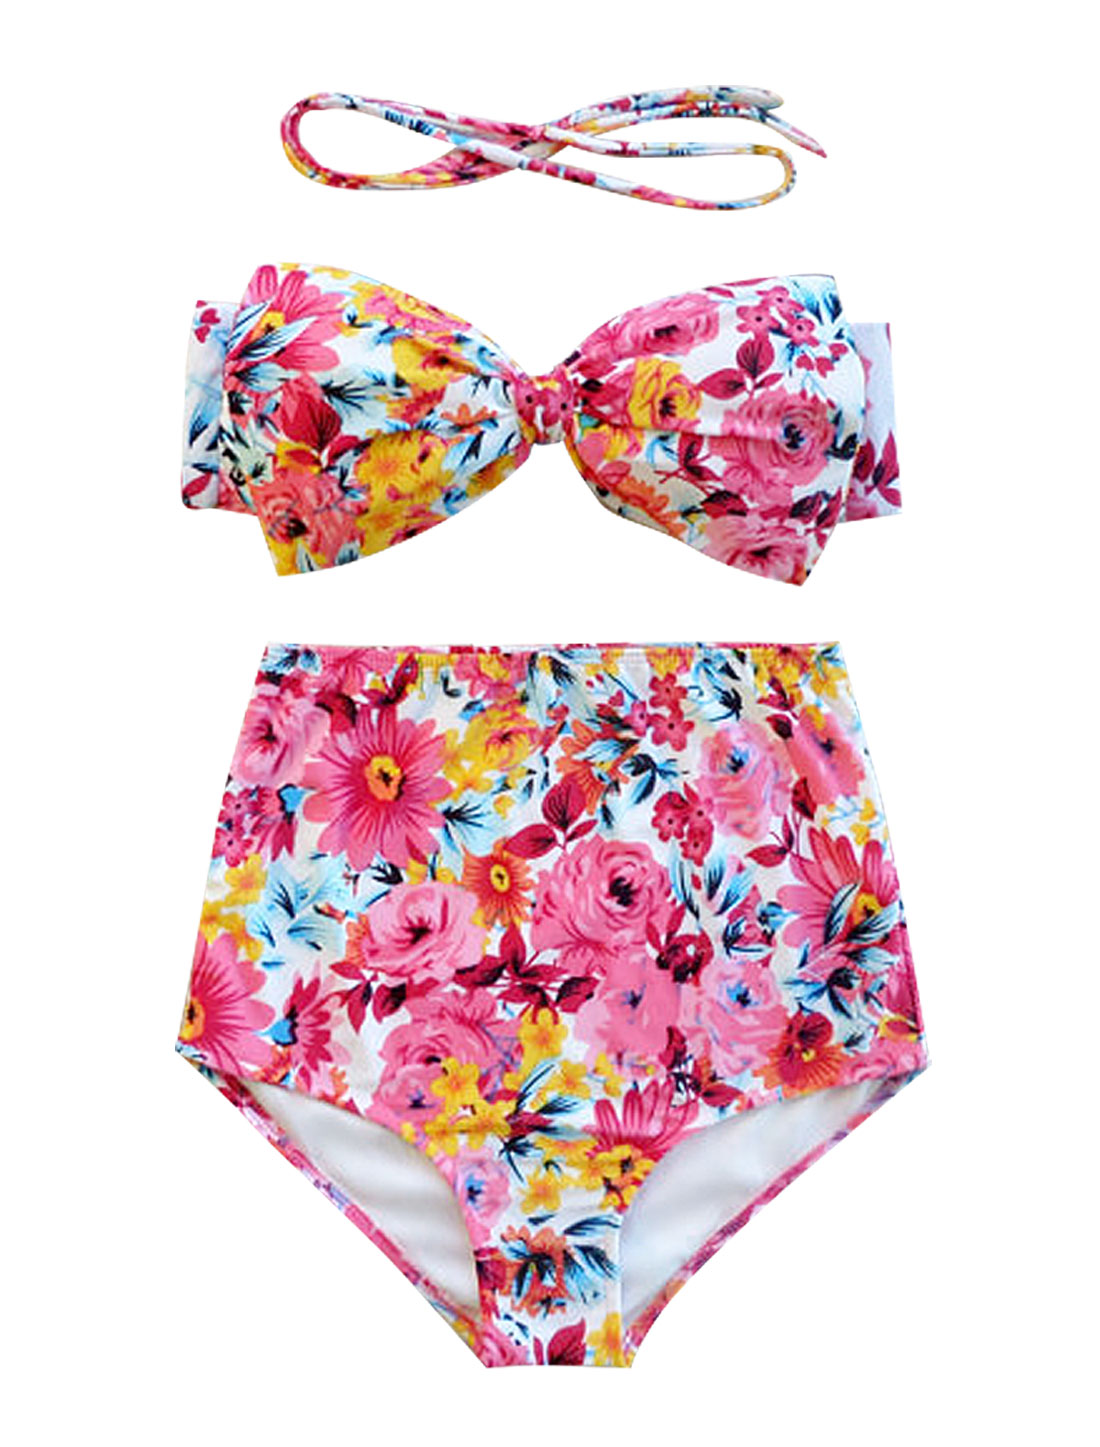 Women Vintage Push-up Padded Bikini Floral High Waist Top Bow Sexy Bathing Suits M Pink